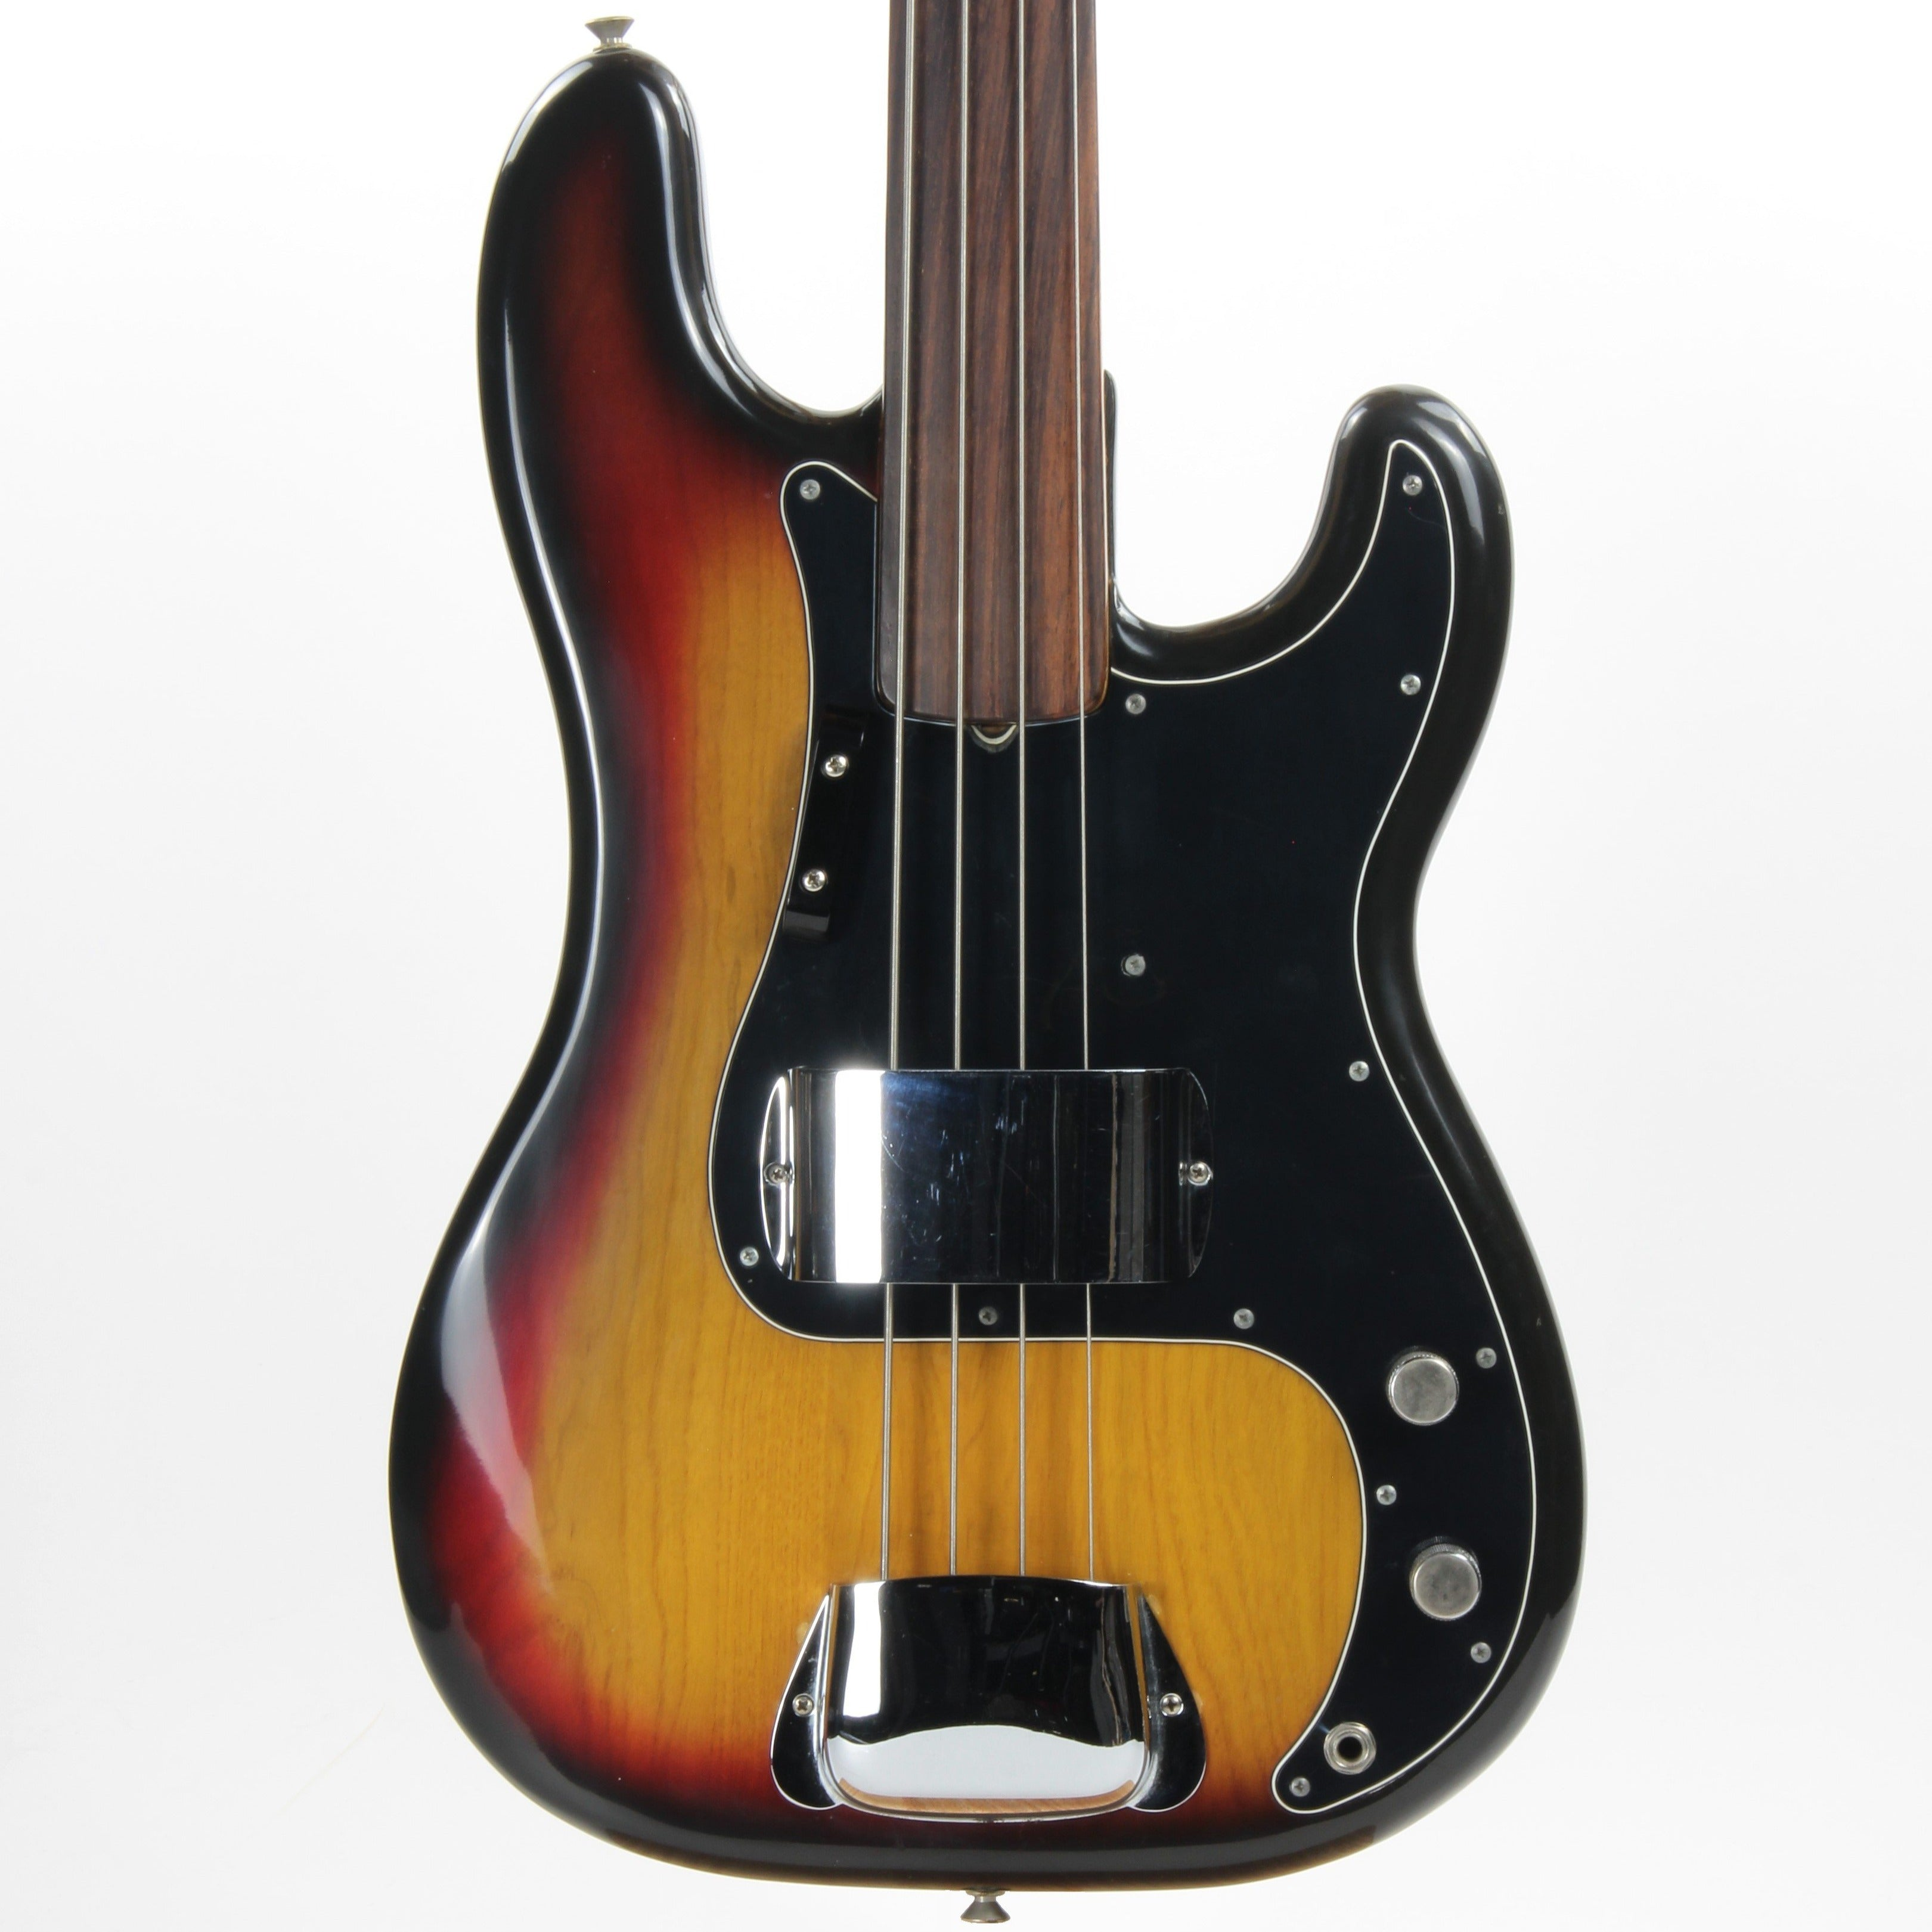 1975 Fender Precision Bass Fretless Vintage - Sunburst, Rosewood Board, Clean P-Bass!